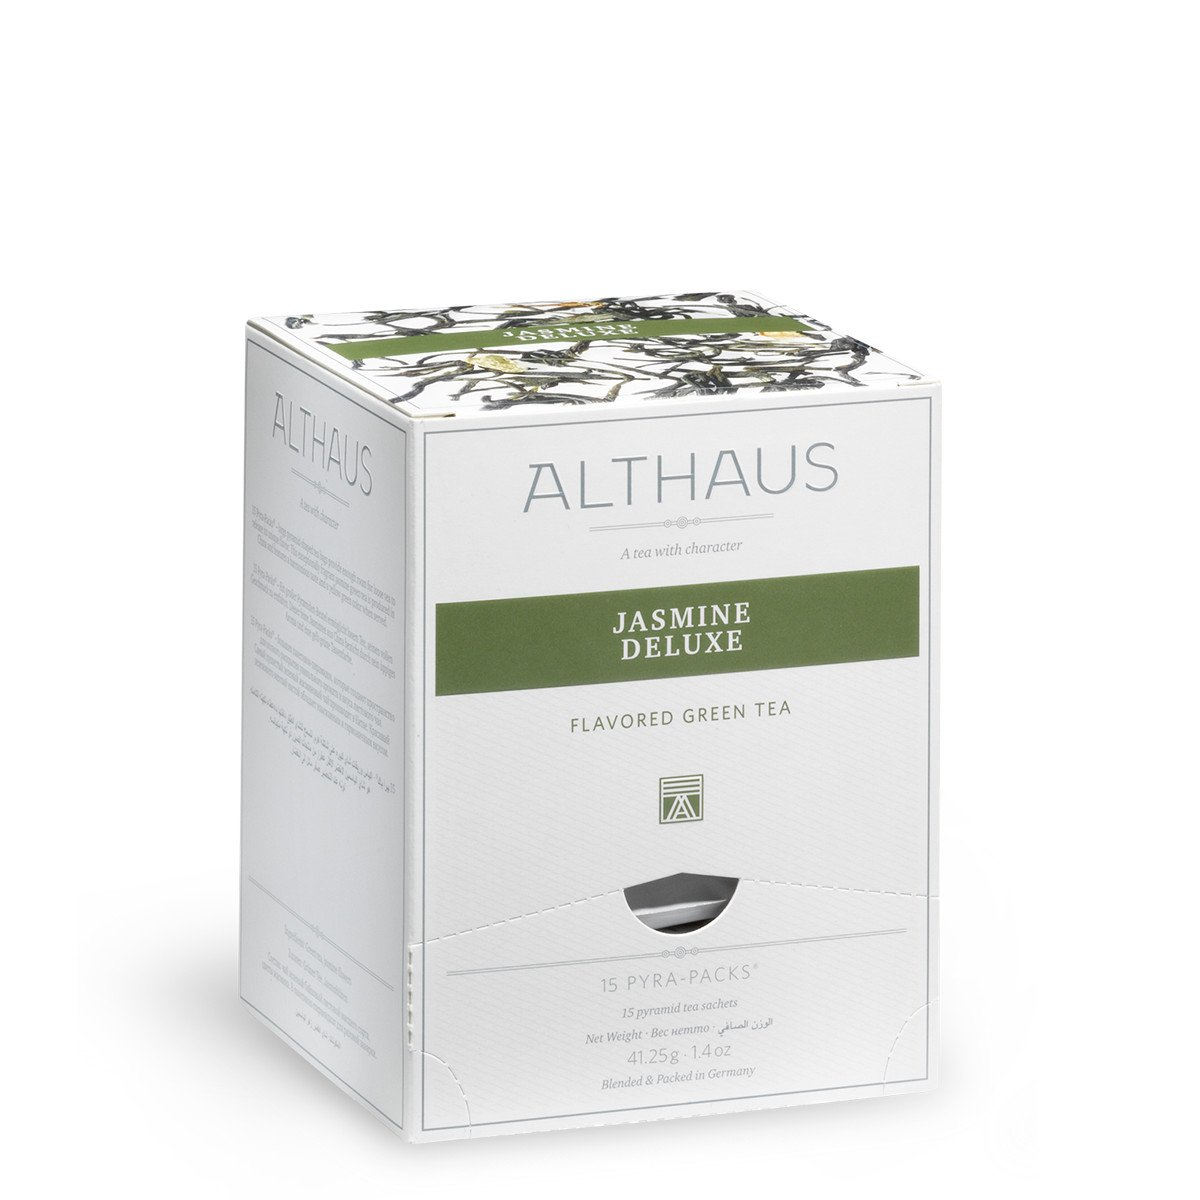 Althaus-Pyra-Pack-Jasmine-Deluxe-15-x-275-g